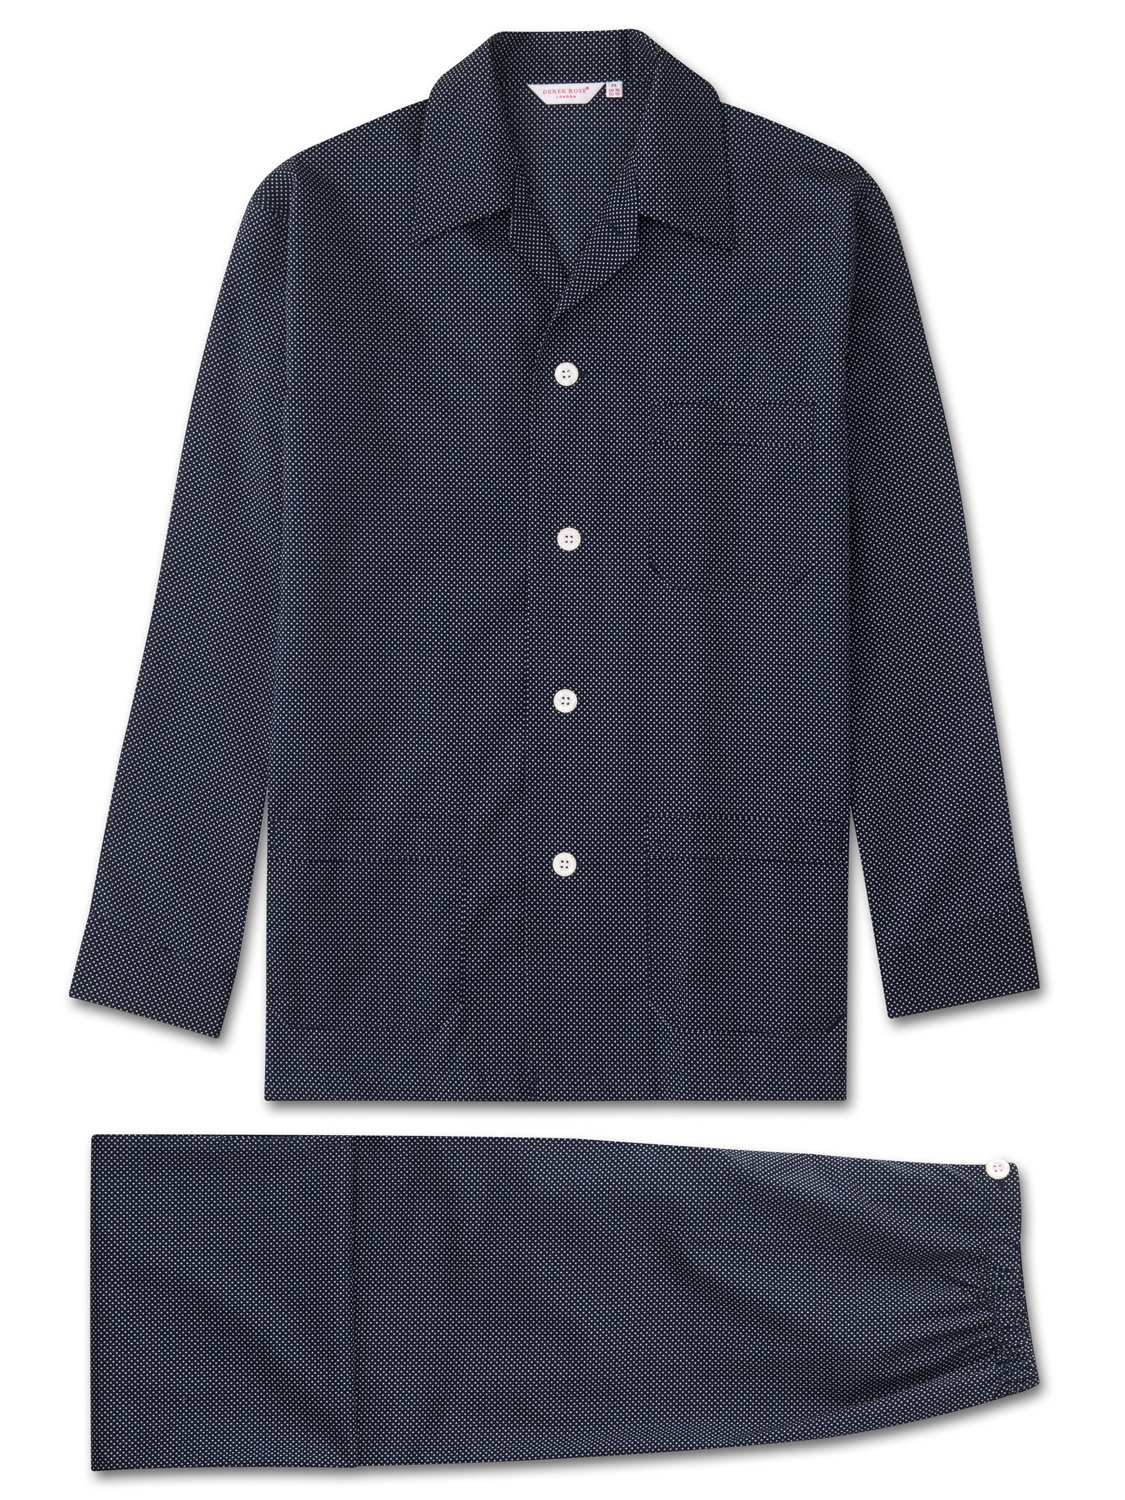 navy men's polka dot cotton pyjama